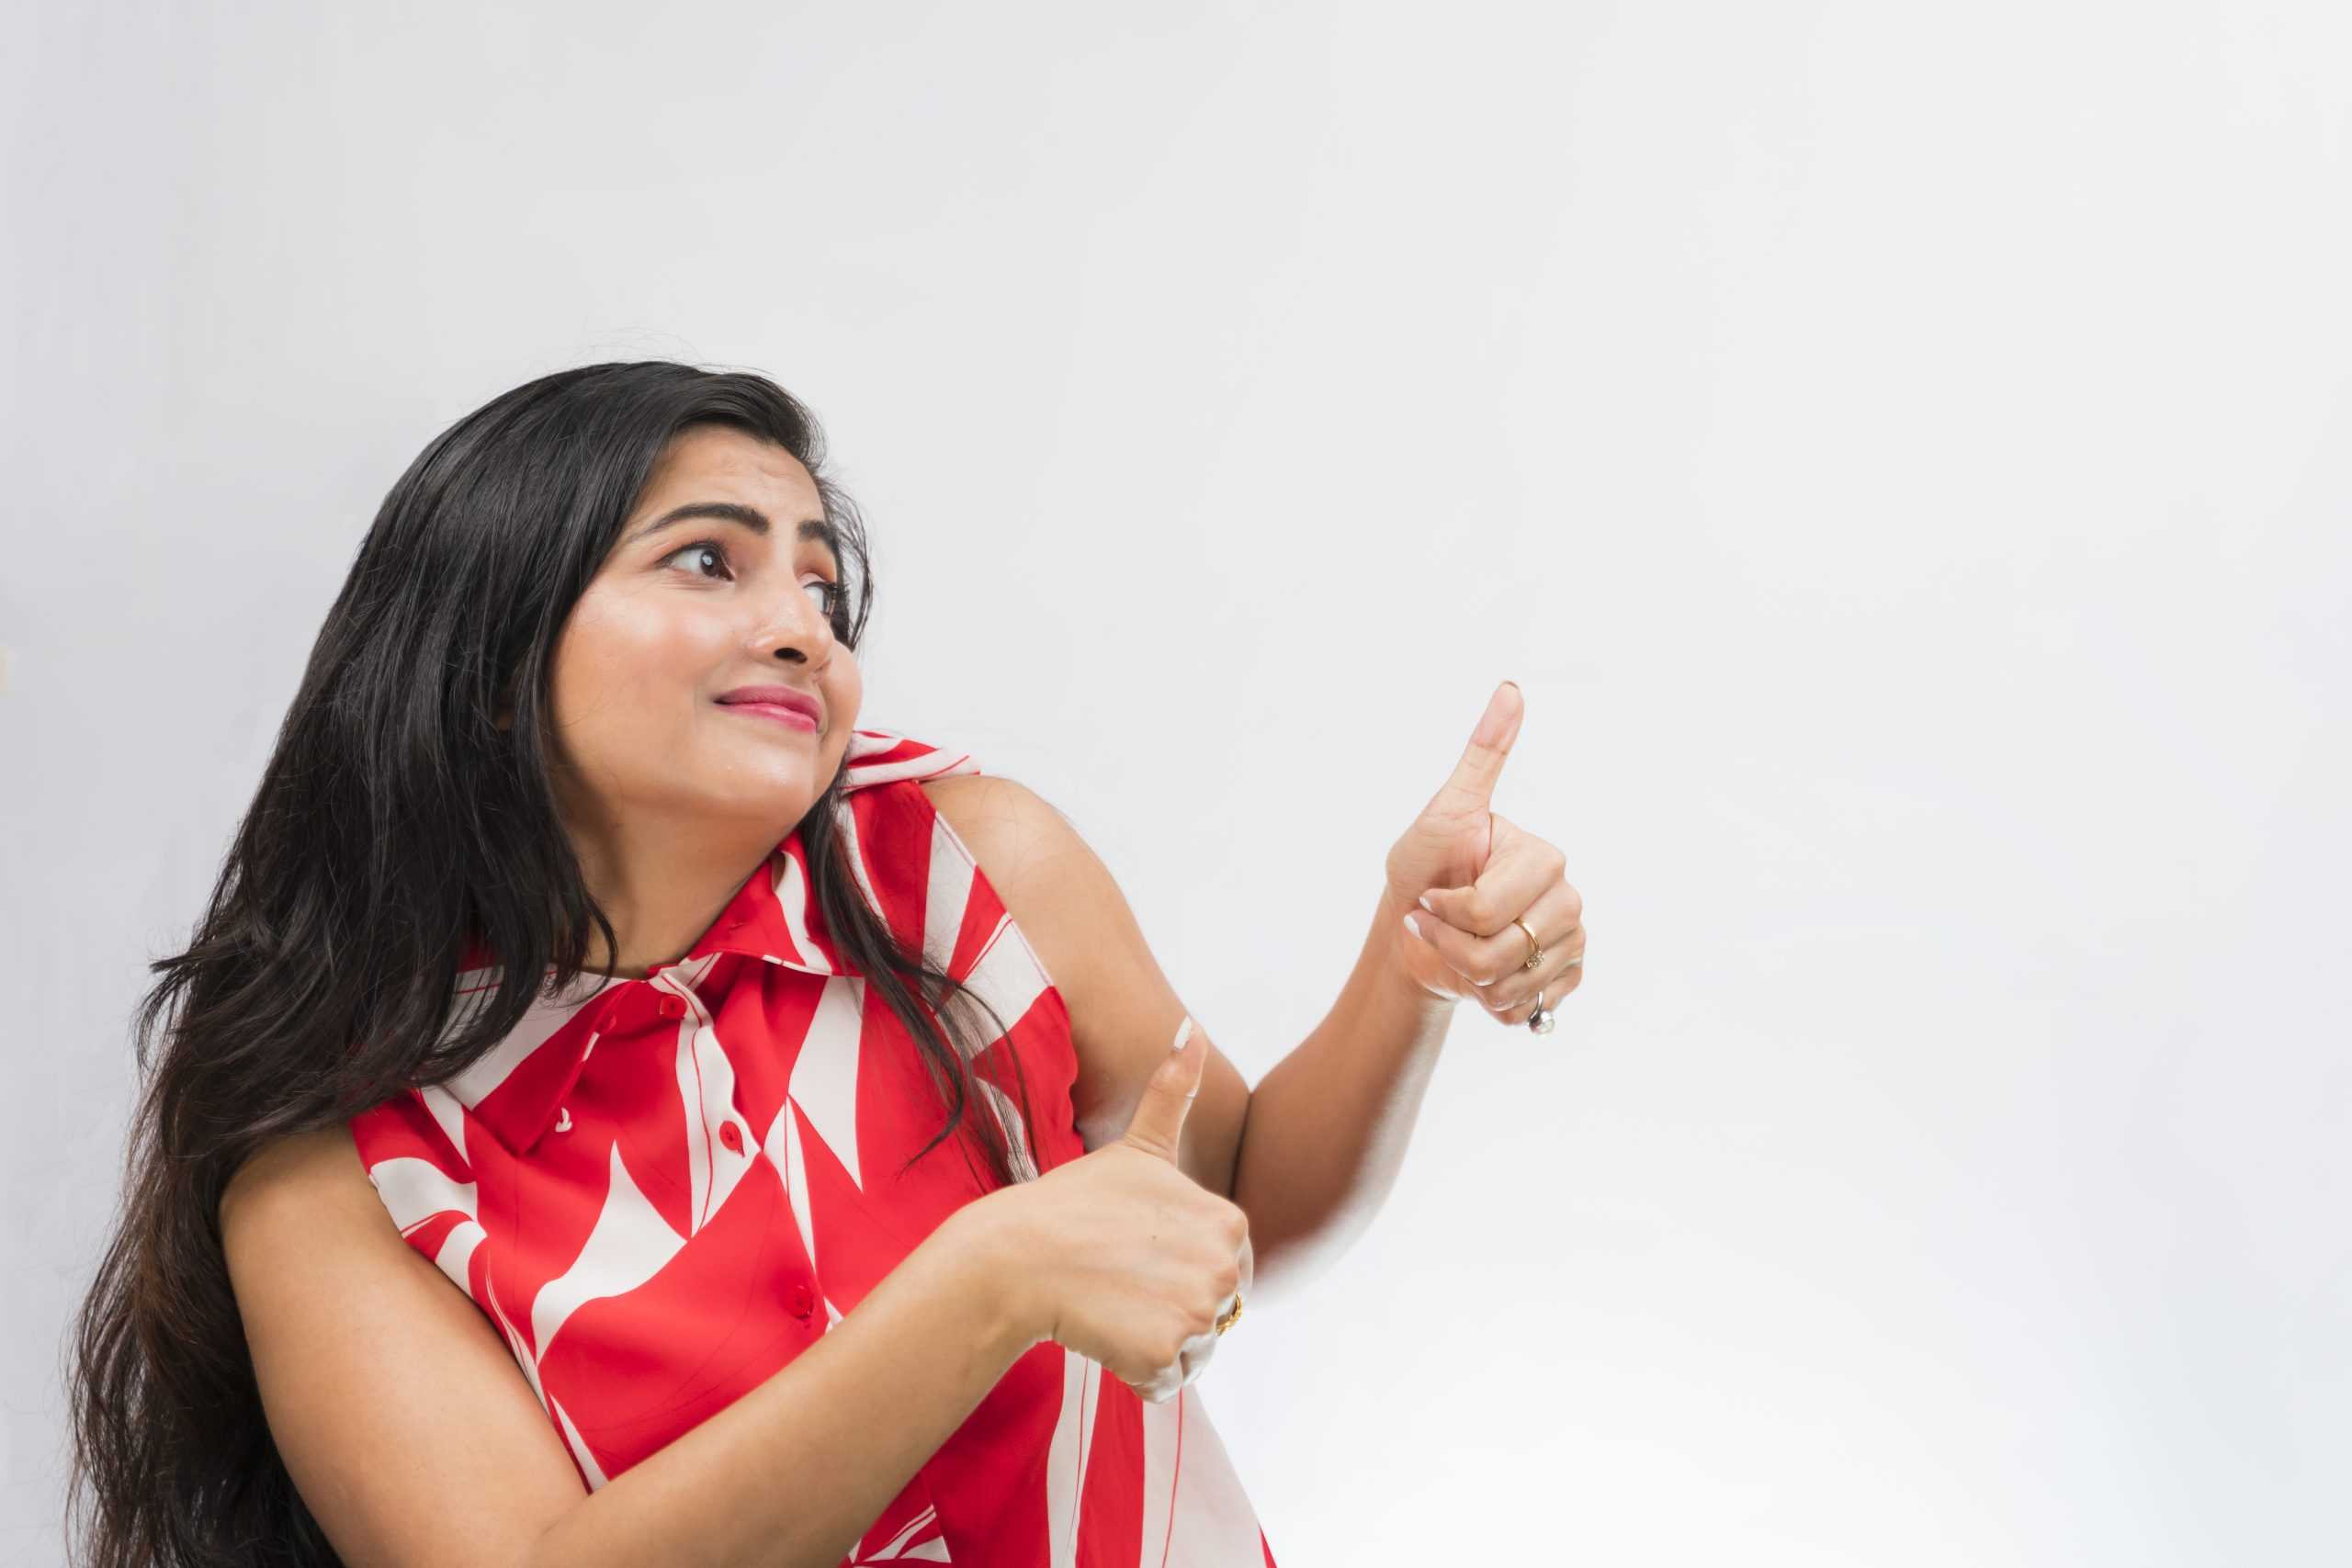 Indian girl gesturing all the best